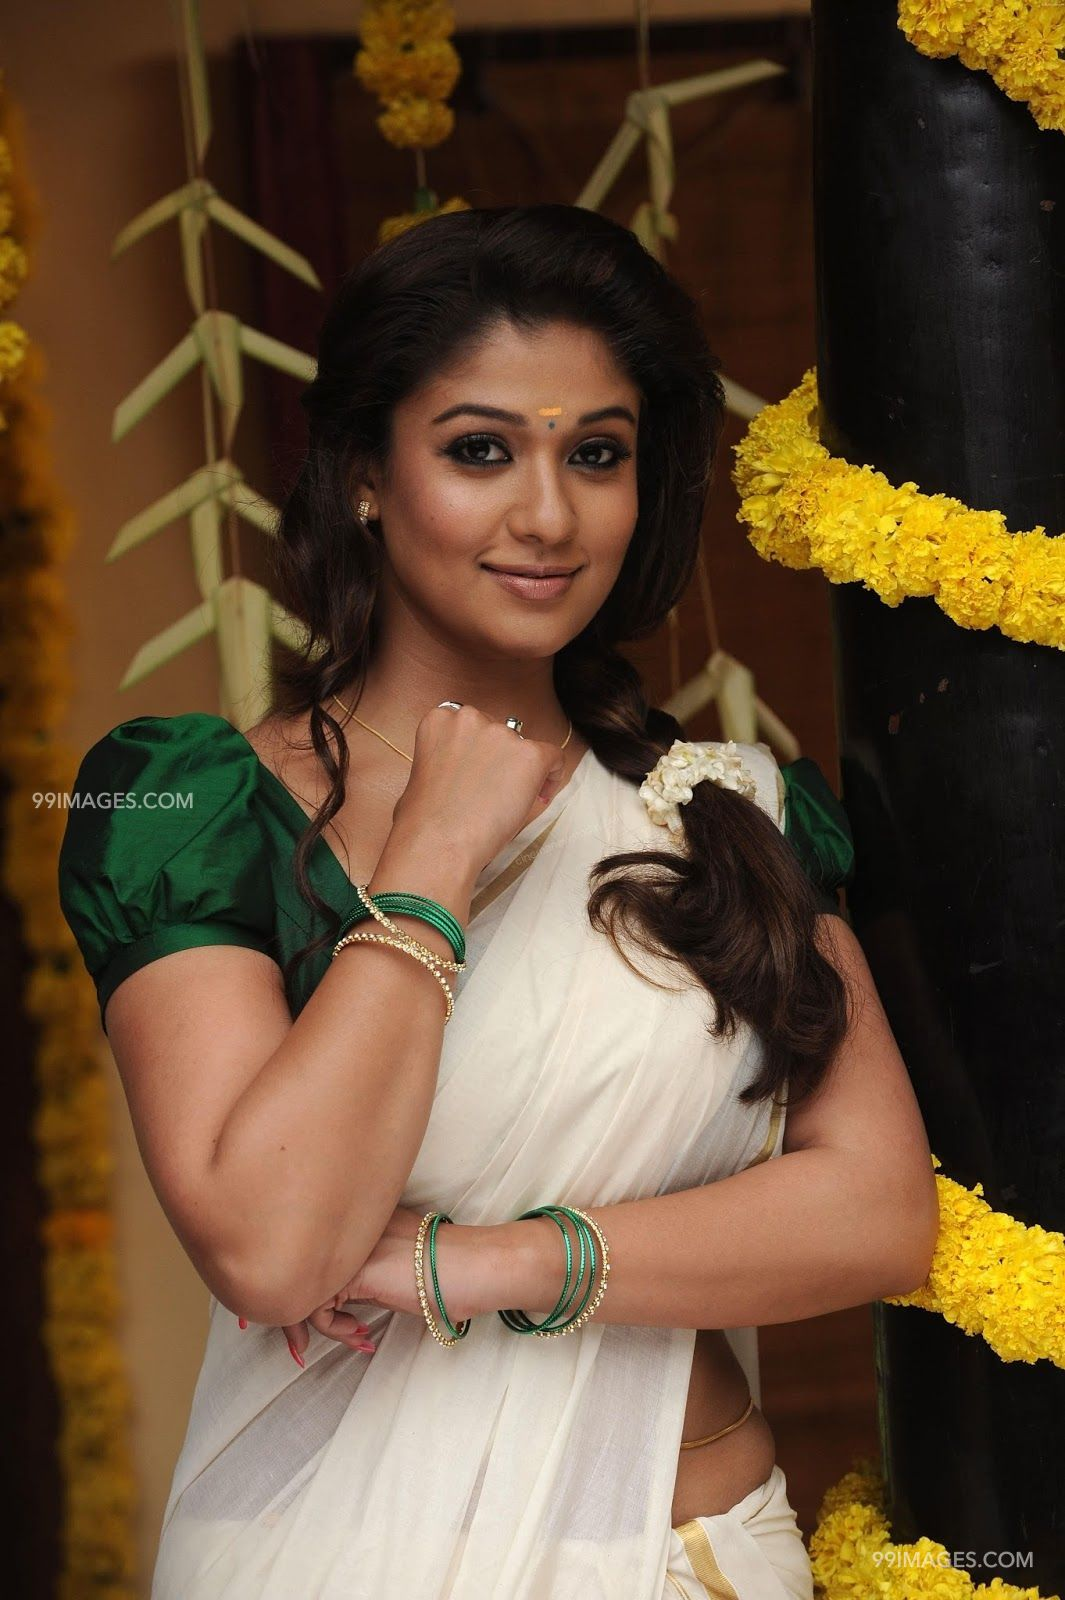 Nayanthara Hot HD Photos, Wallpapers, WhatsApp DP (1080p) (828) - Nayanthara